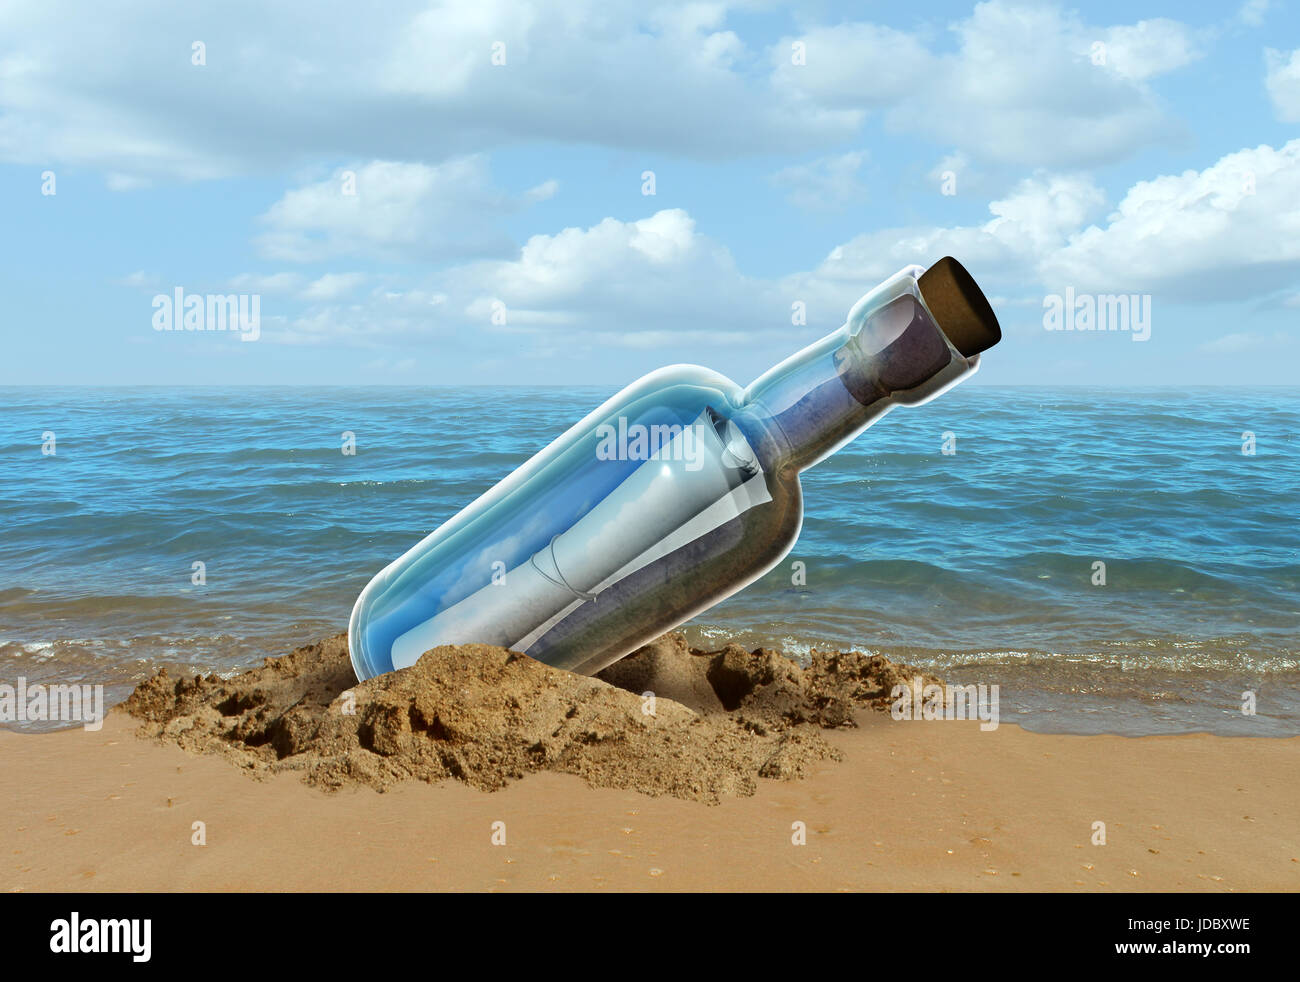 Message in a bottle concept as a note on a sealed glass container as a communication metaphor for sending a letter - Stock Image